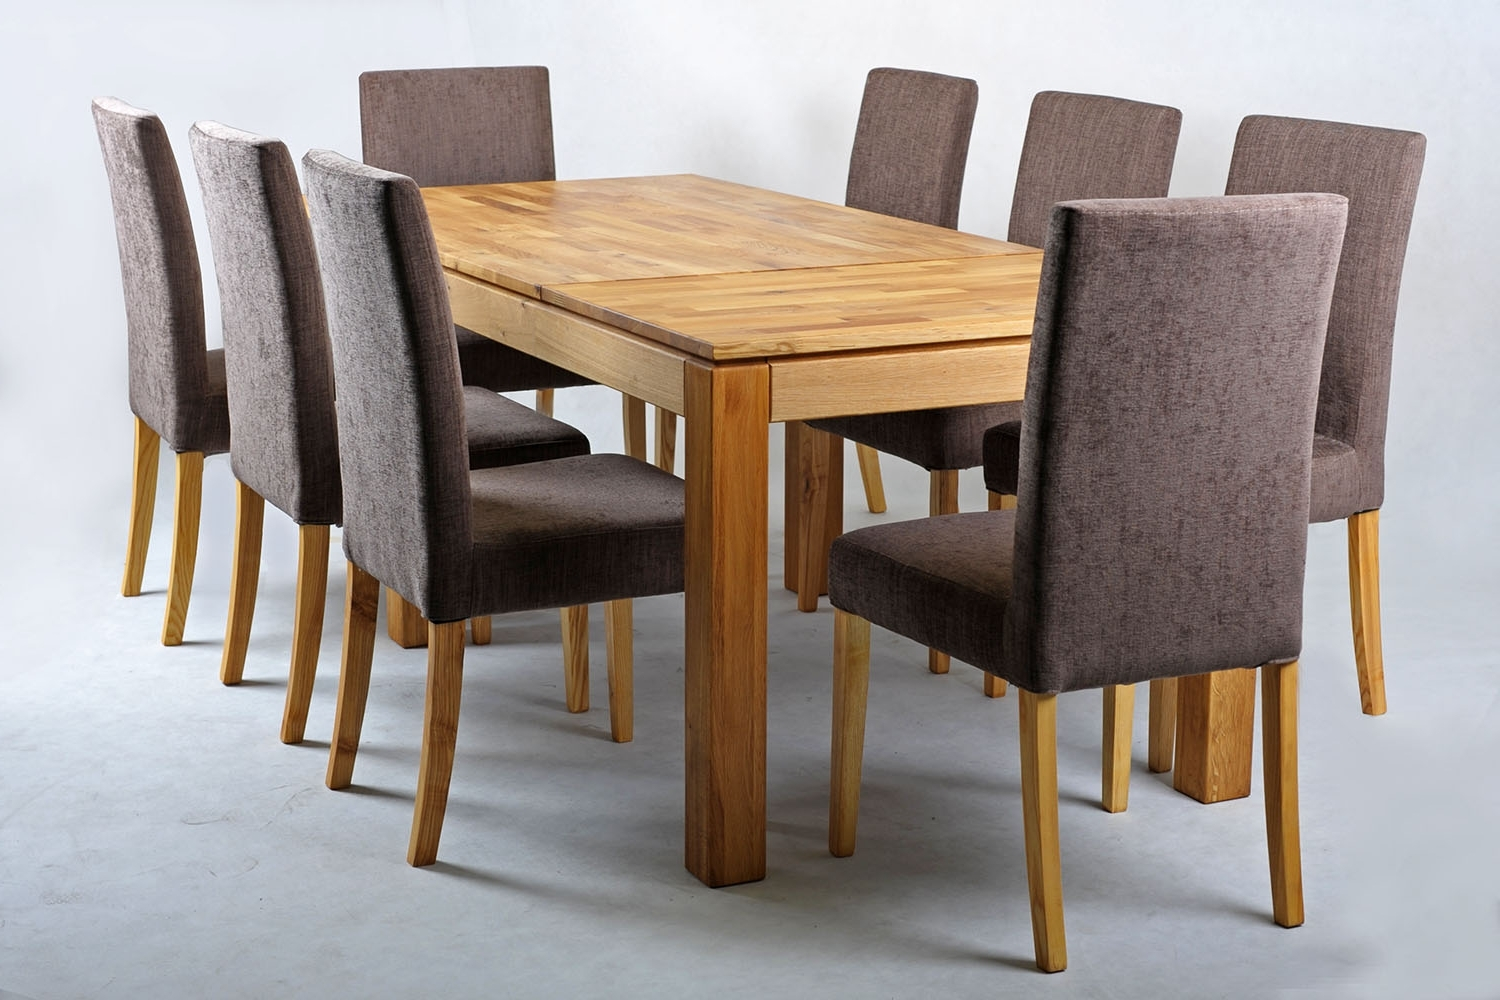 Solid Oak Extending Dining Table And Chairs Set, Solid Oak Dining In Well Known Extending Dining Tables Sets (View 22 of 25)